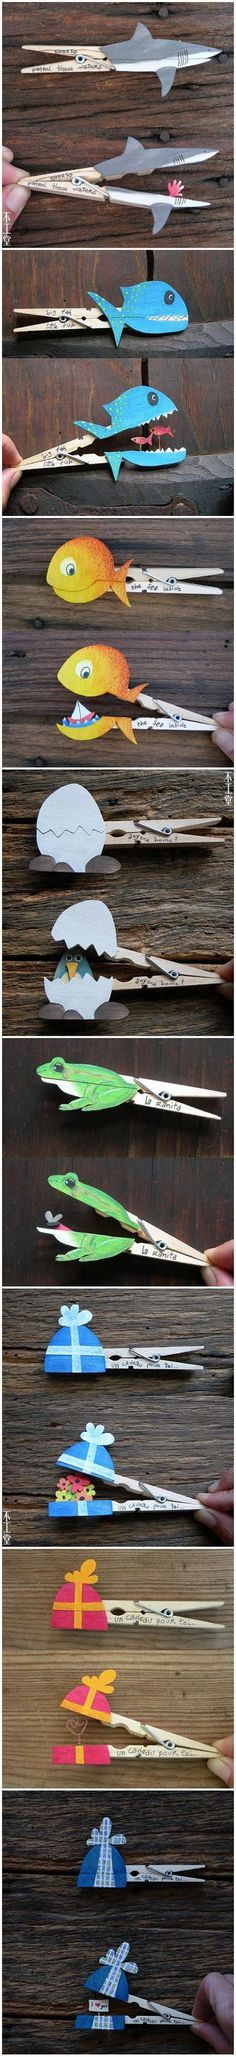 Fun With Clothespins…